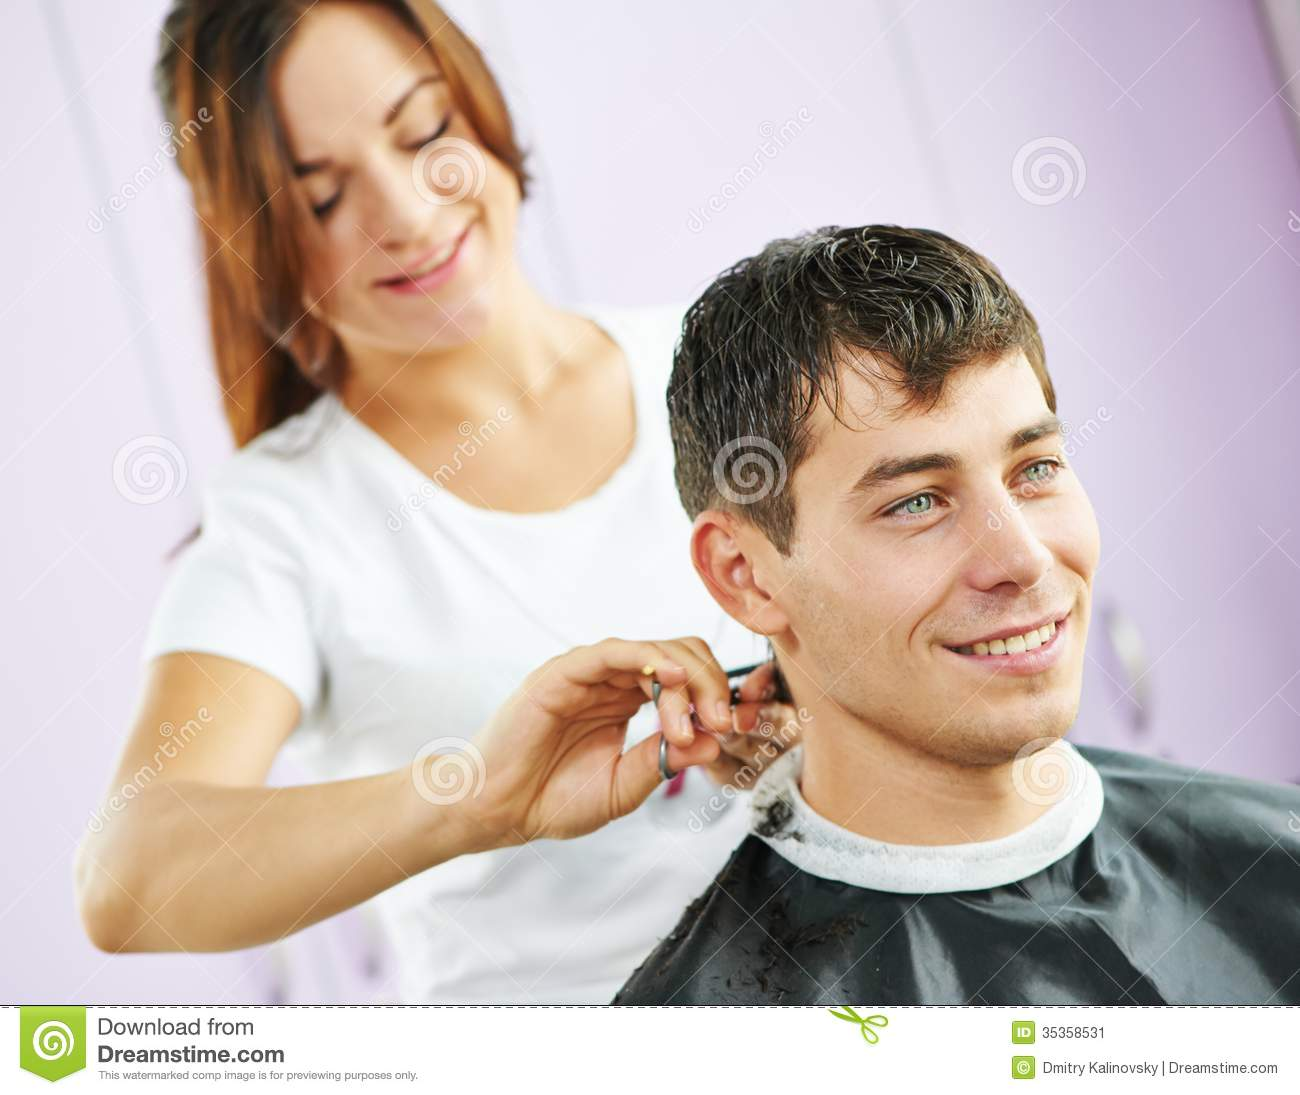 Women and the Barbershop What to Consider Before Your